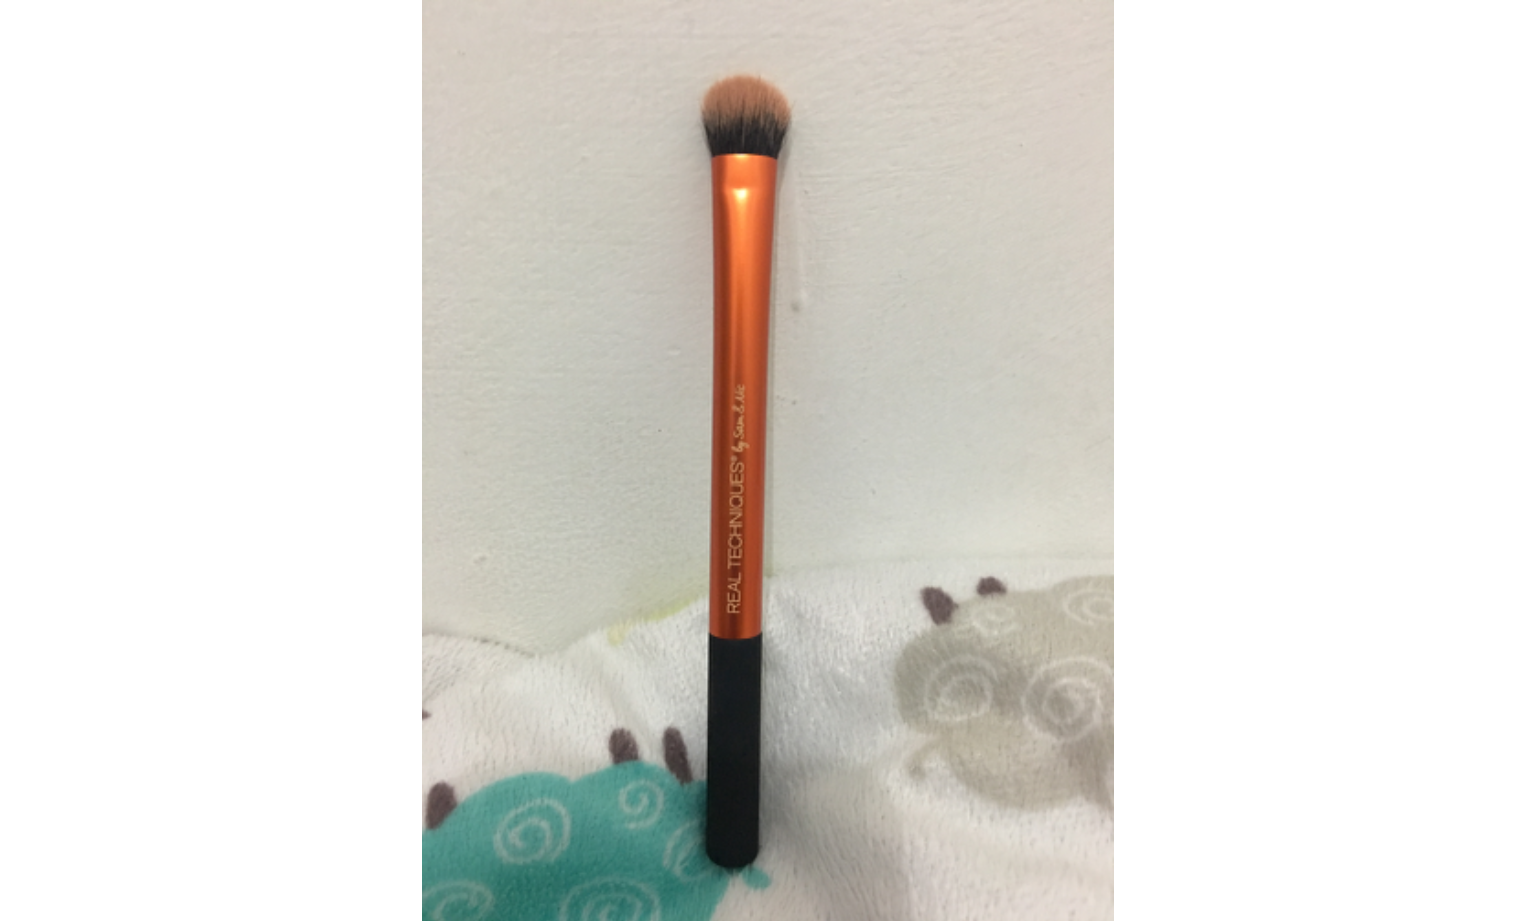 Real Techniques 1542 Expert Concealer Brush